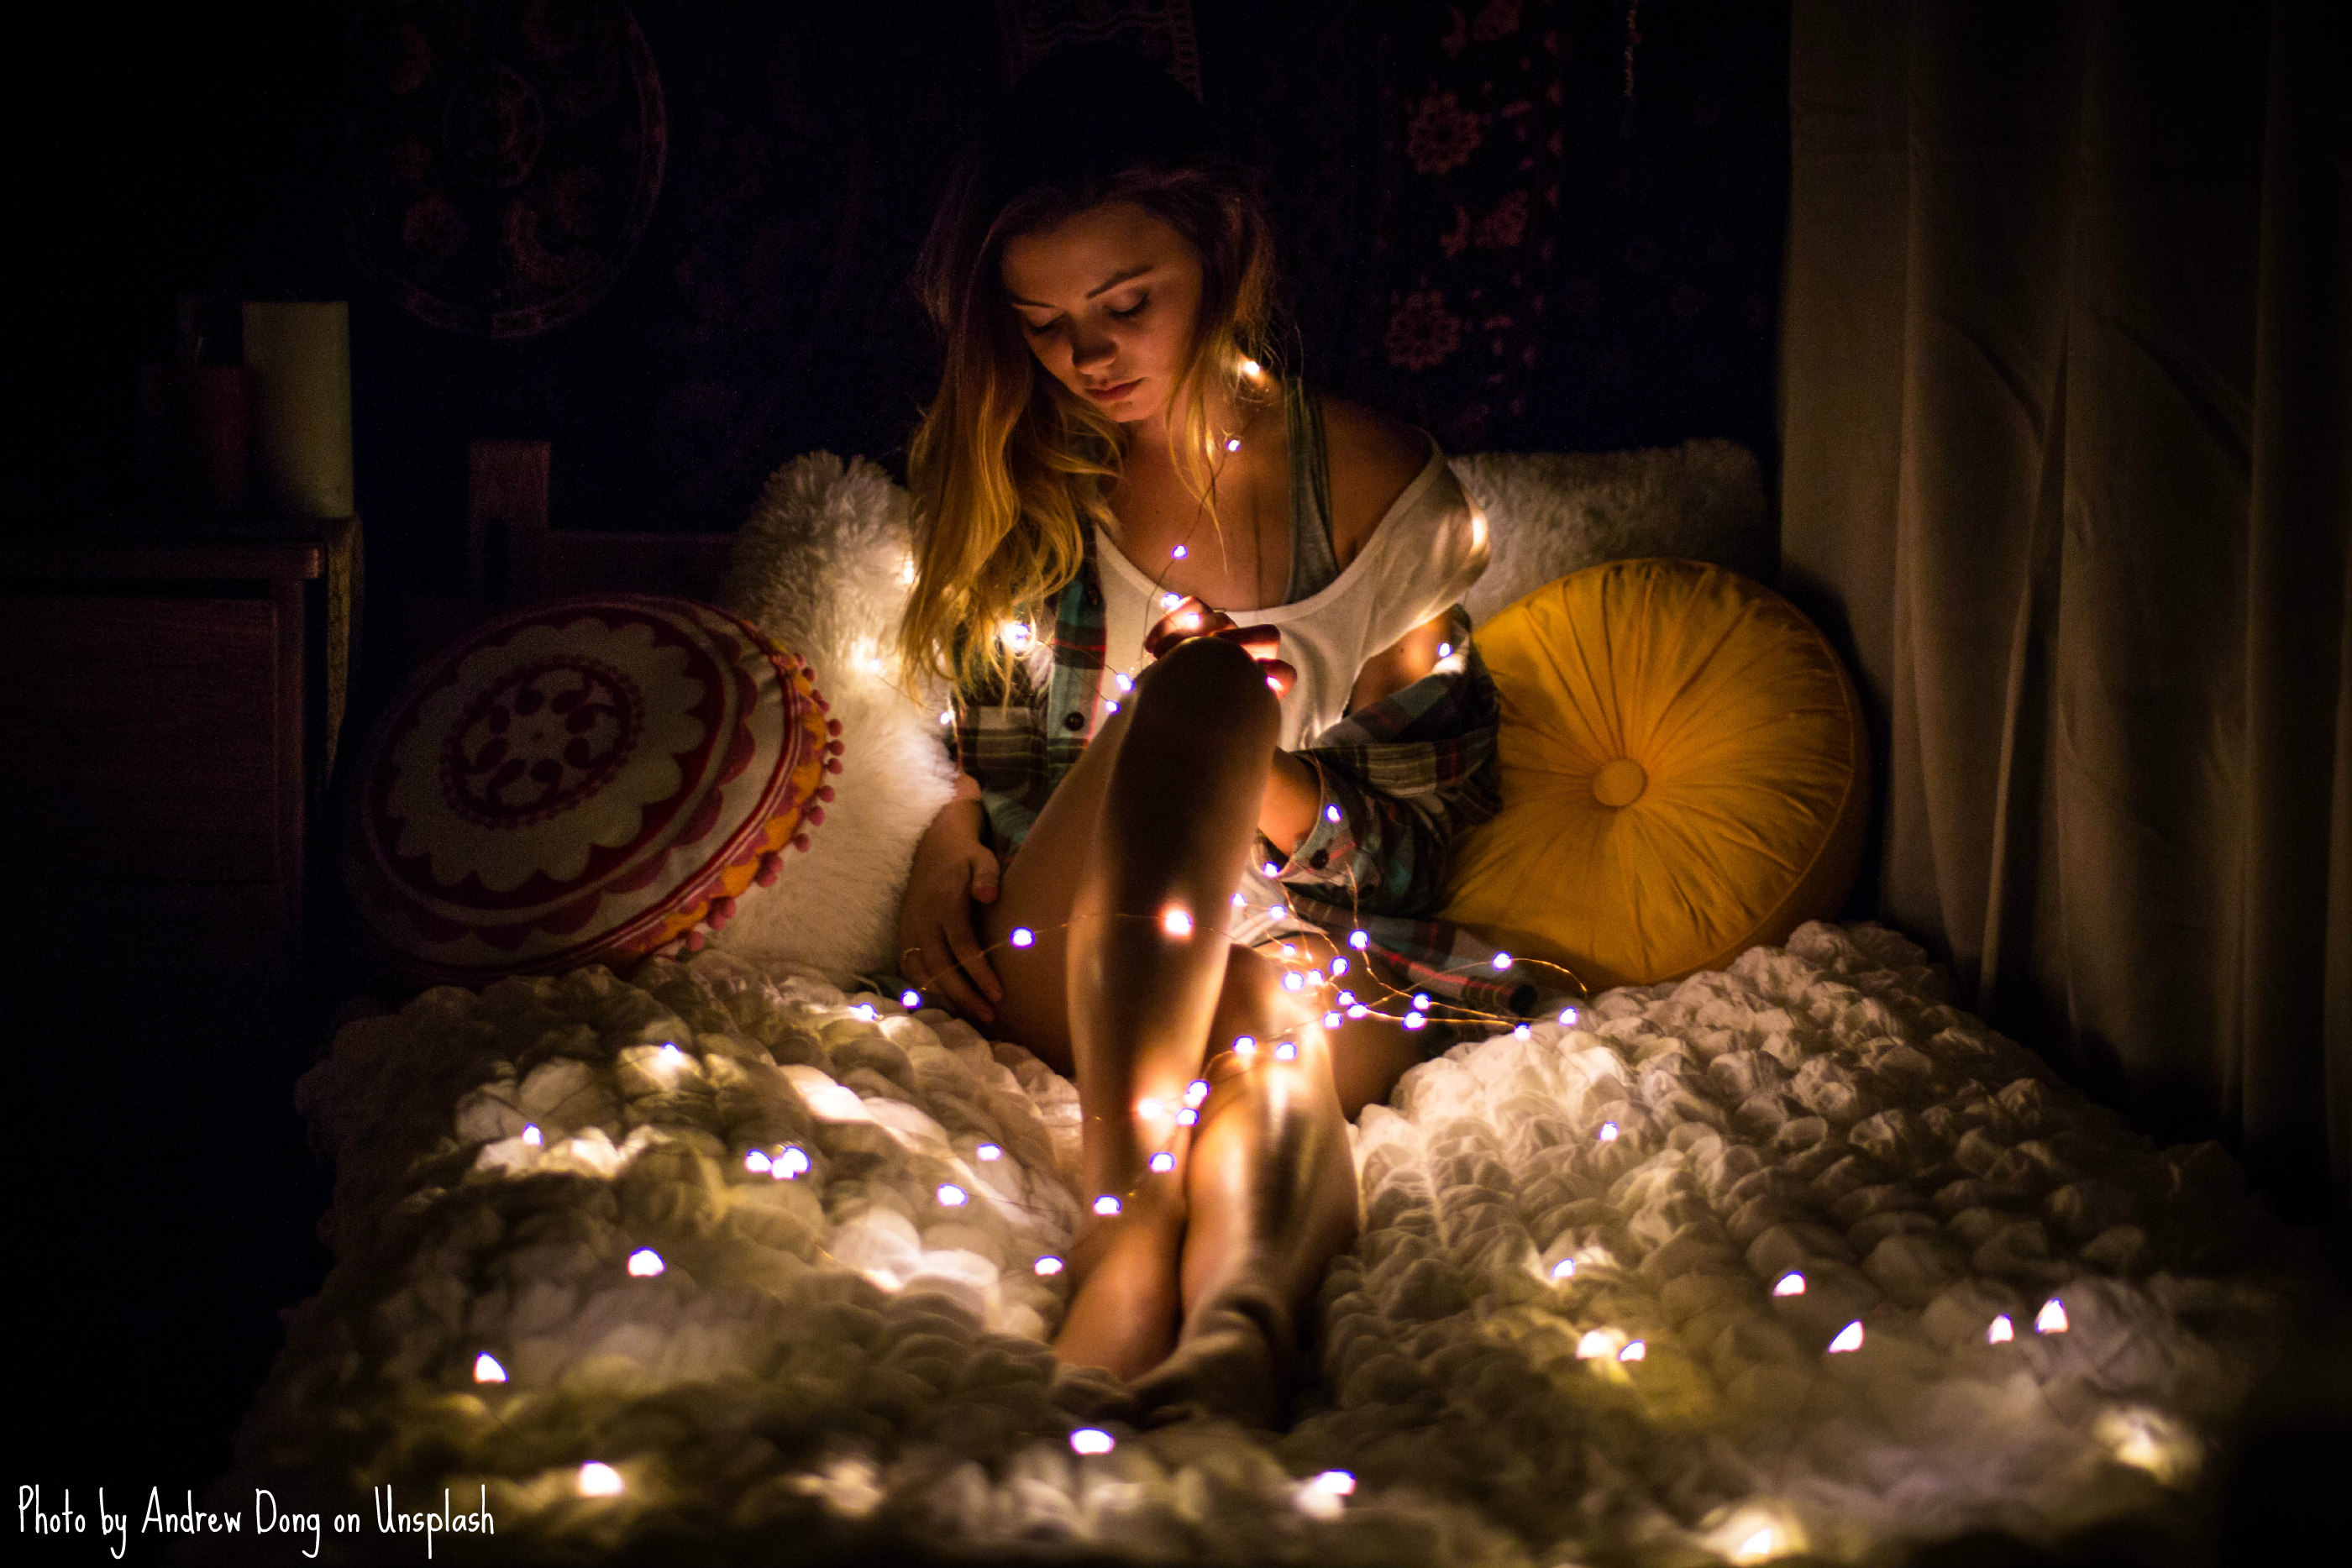 A female with blonde wavy hair and golden skin lounges on a mattress adorned with a fuzzy comforter and throw pillows. the room is dark, and she has string lights ranging from yellow to pale pink wrapped around her neck, torso, and legs. The lights are on, illuminating her in the darkness.